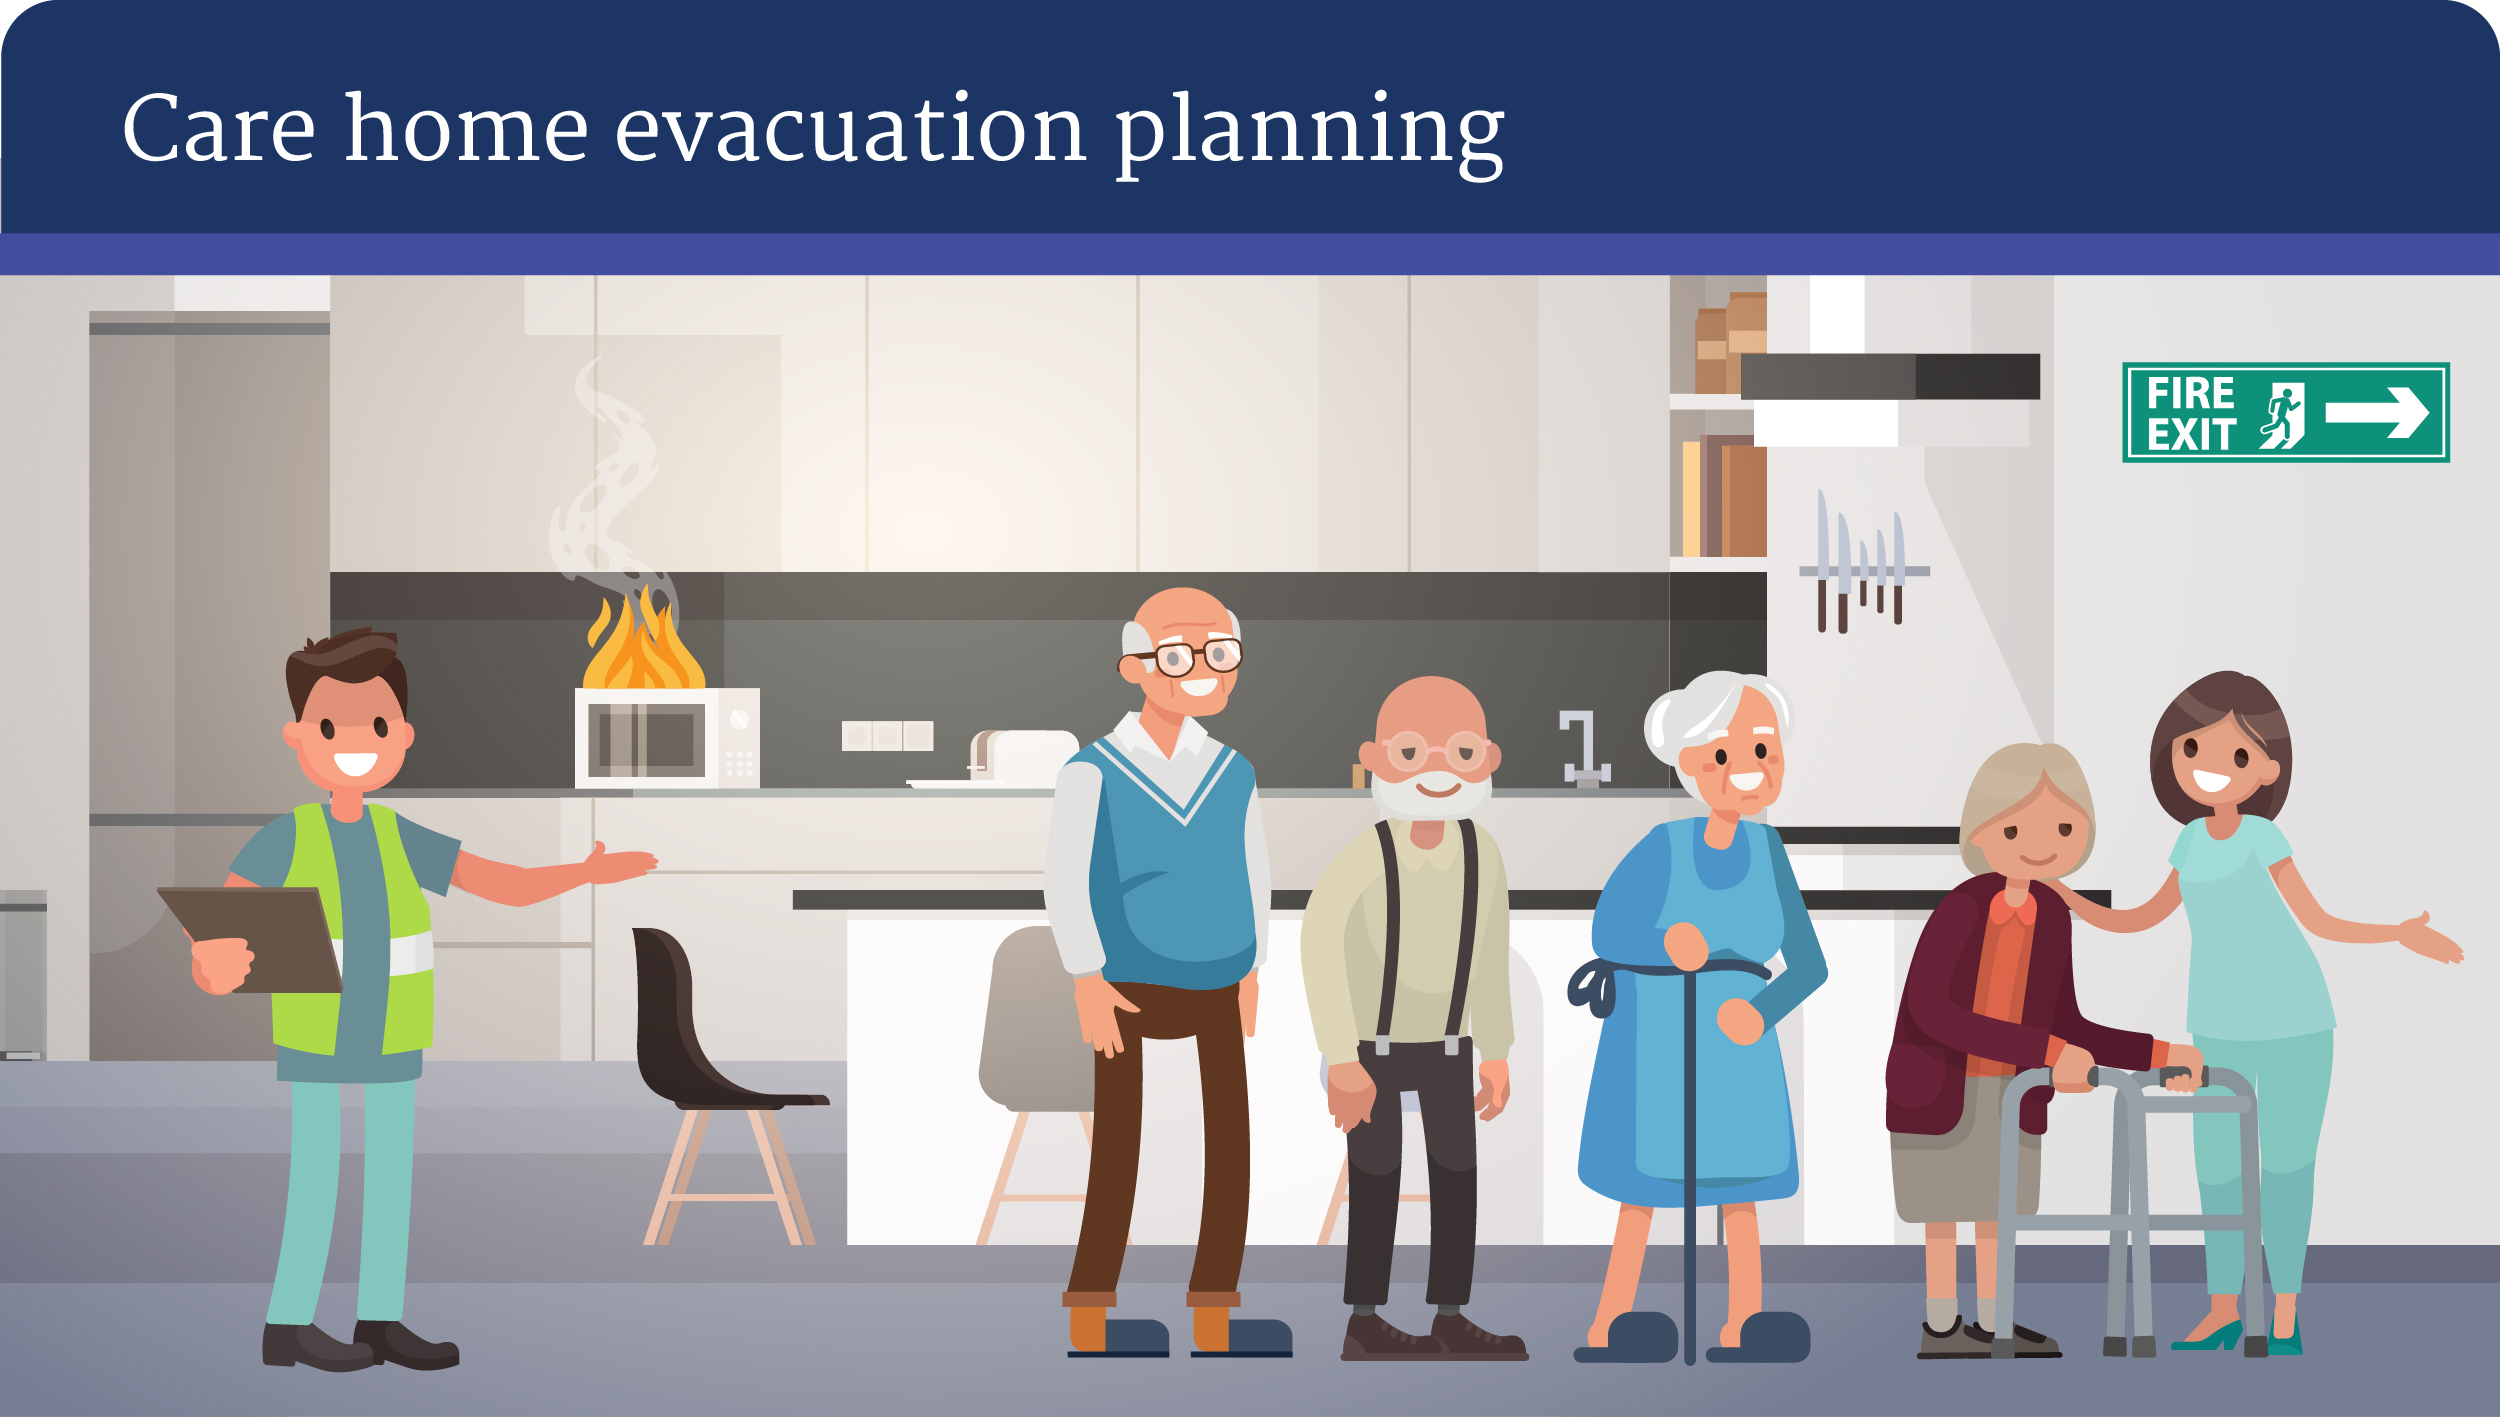 Fire Safety in Care Homes - evacuation planning.